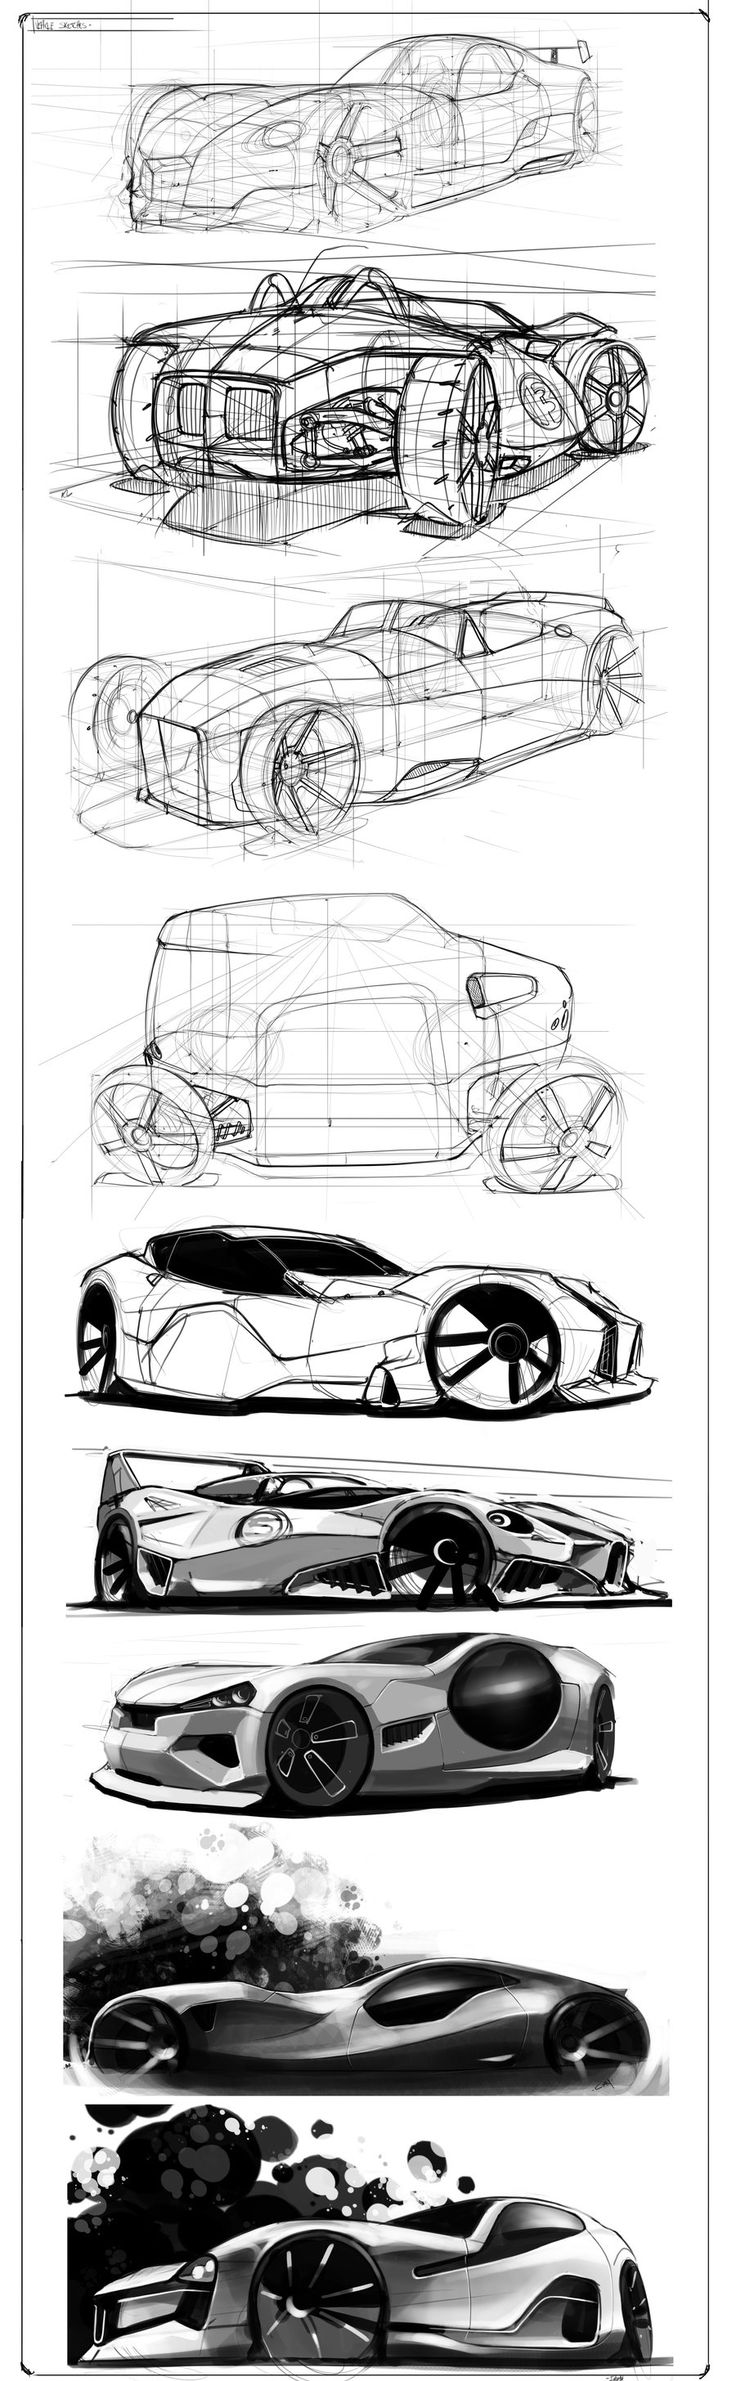 Random Vehicle Sketches 2 by Insomni-Design.deviantart.com